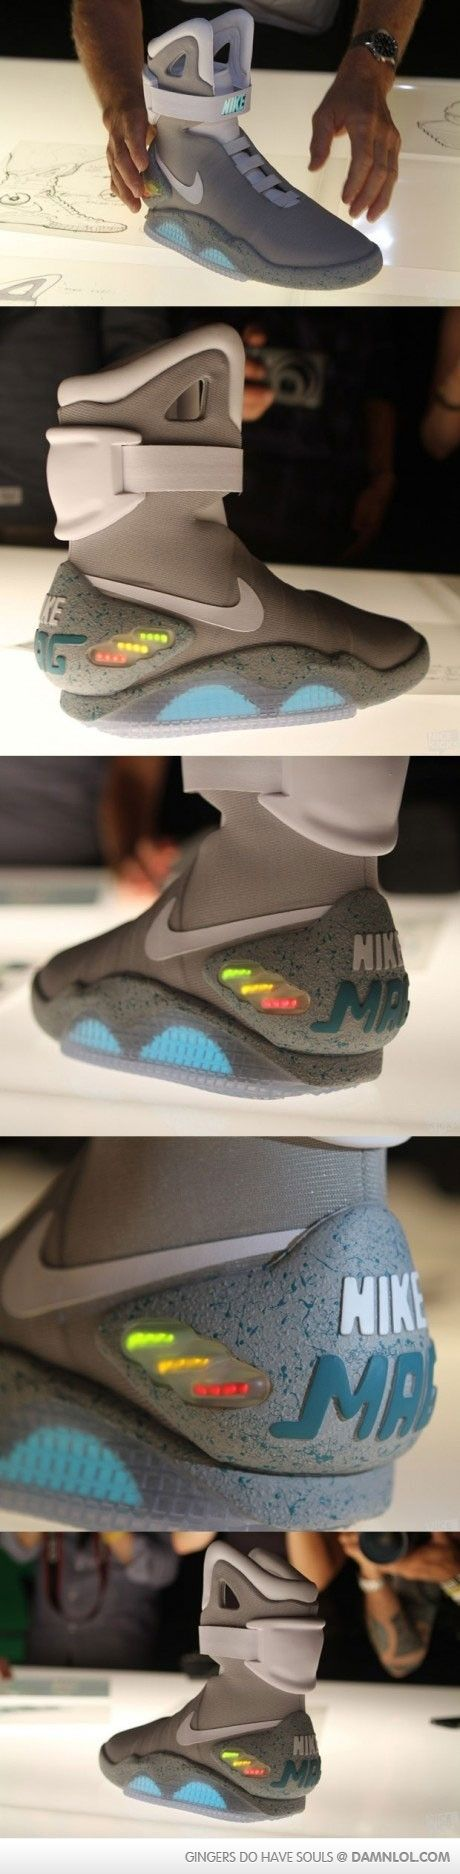 Nike x Air Mag x Back to the Future x Marty McFly Sneakers